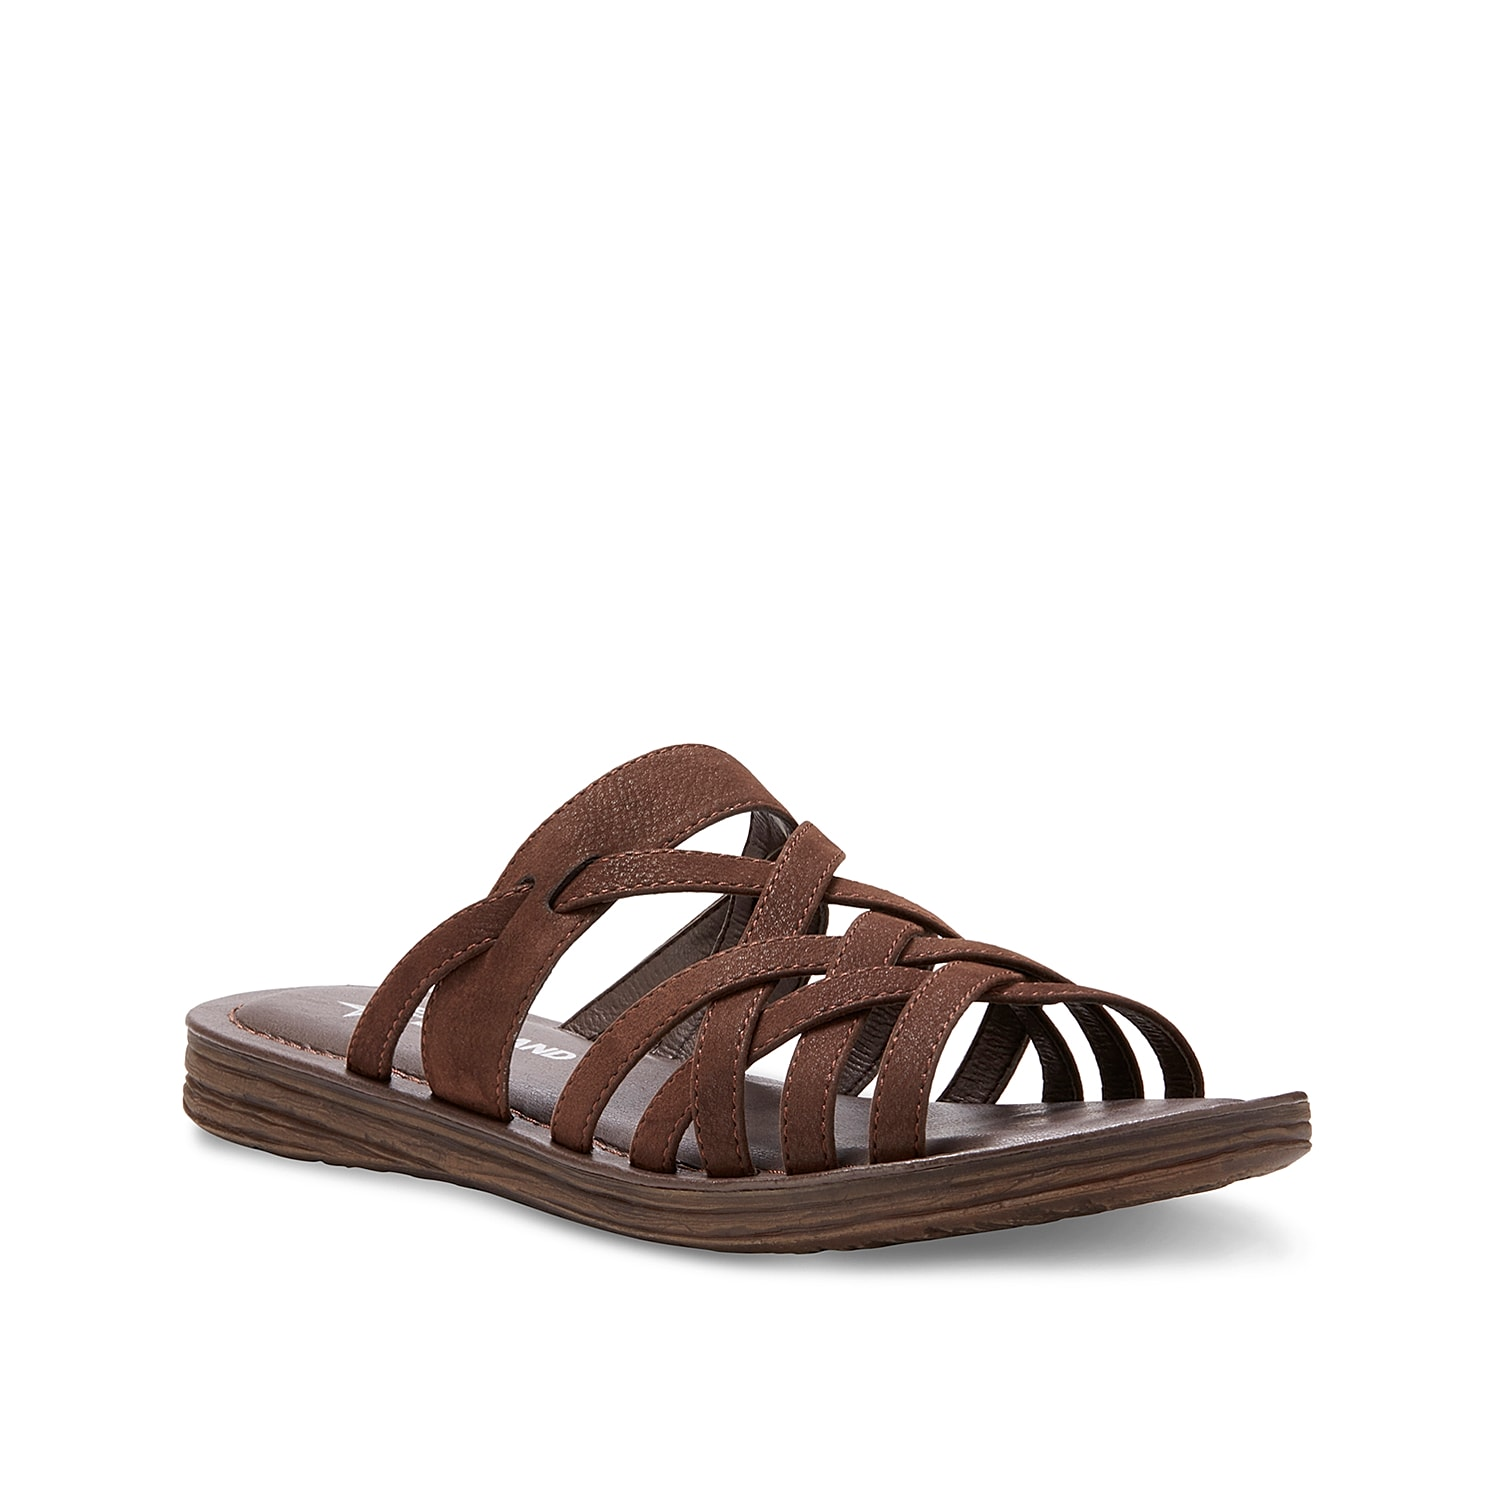 Slide into comfort and style with the Ellie sandal from Eastland. Interwoven straps create a secure fit while the memory foam footbed cushions every step.